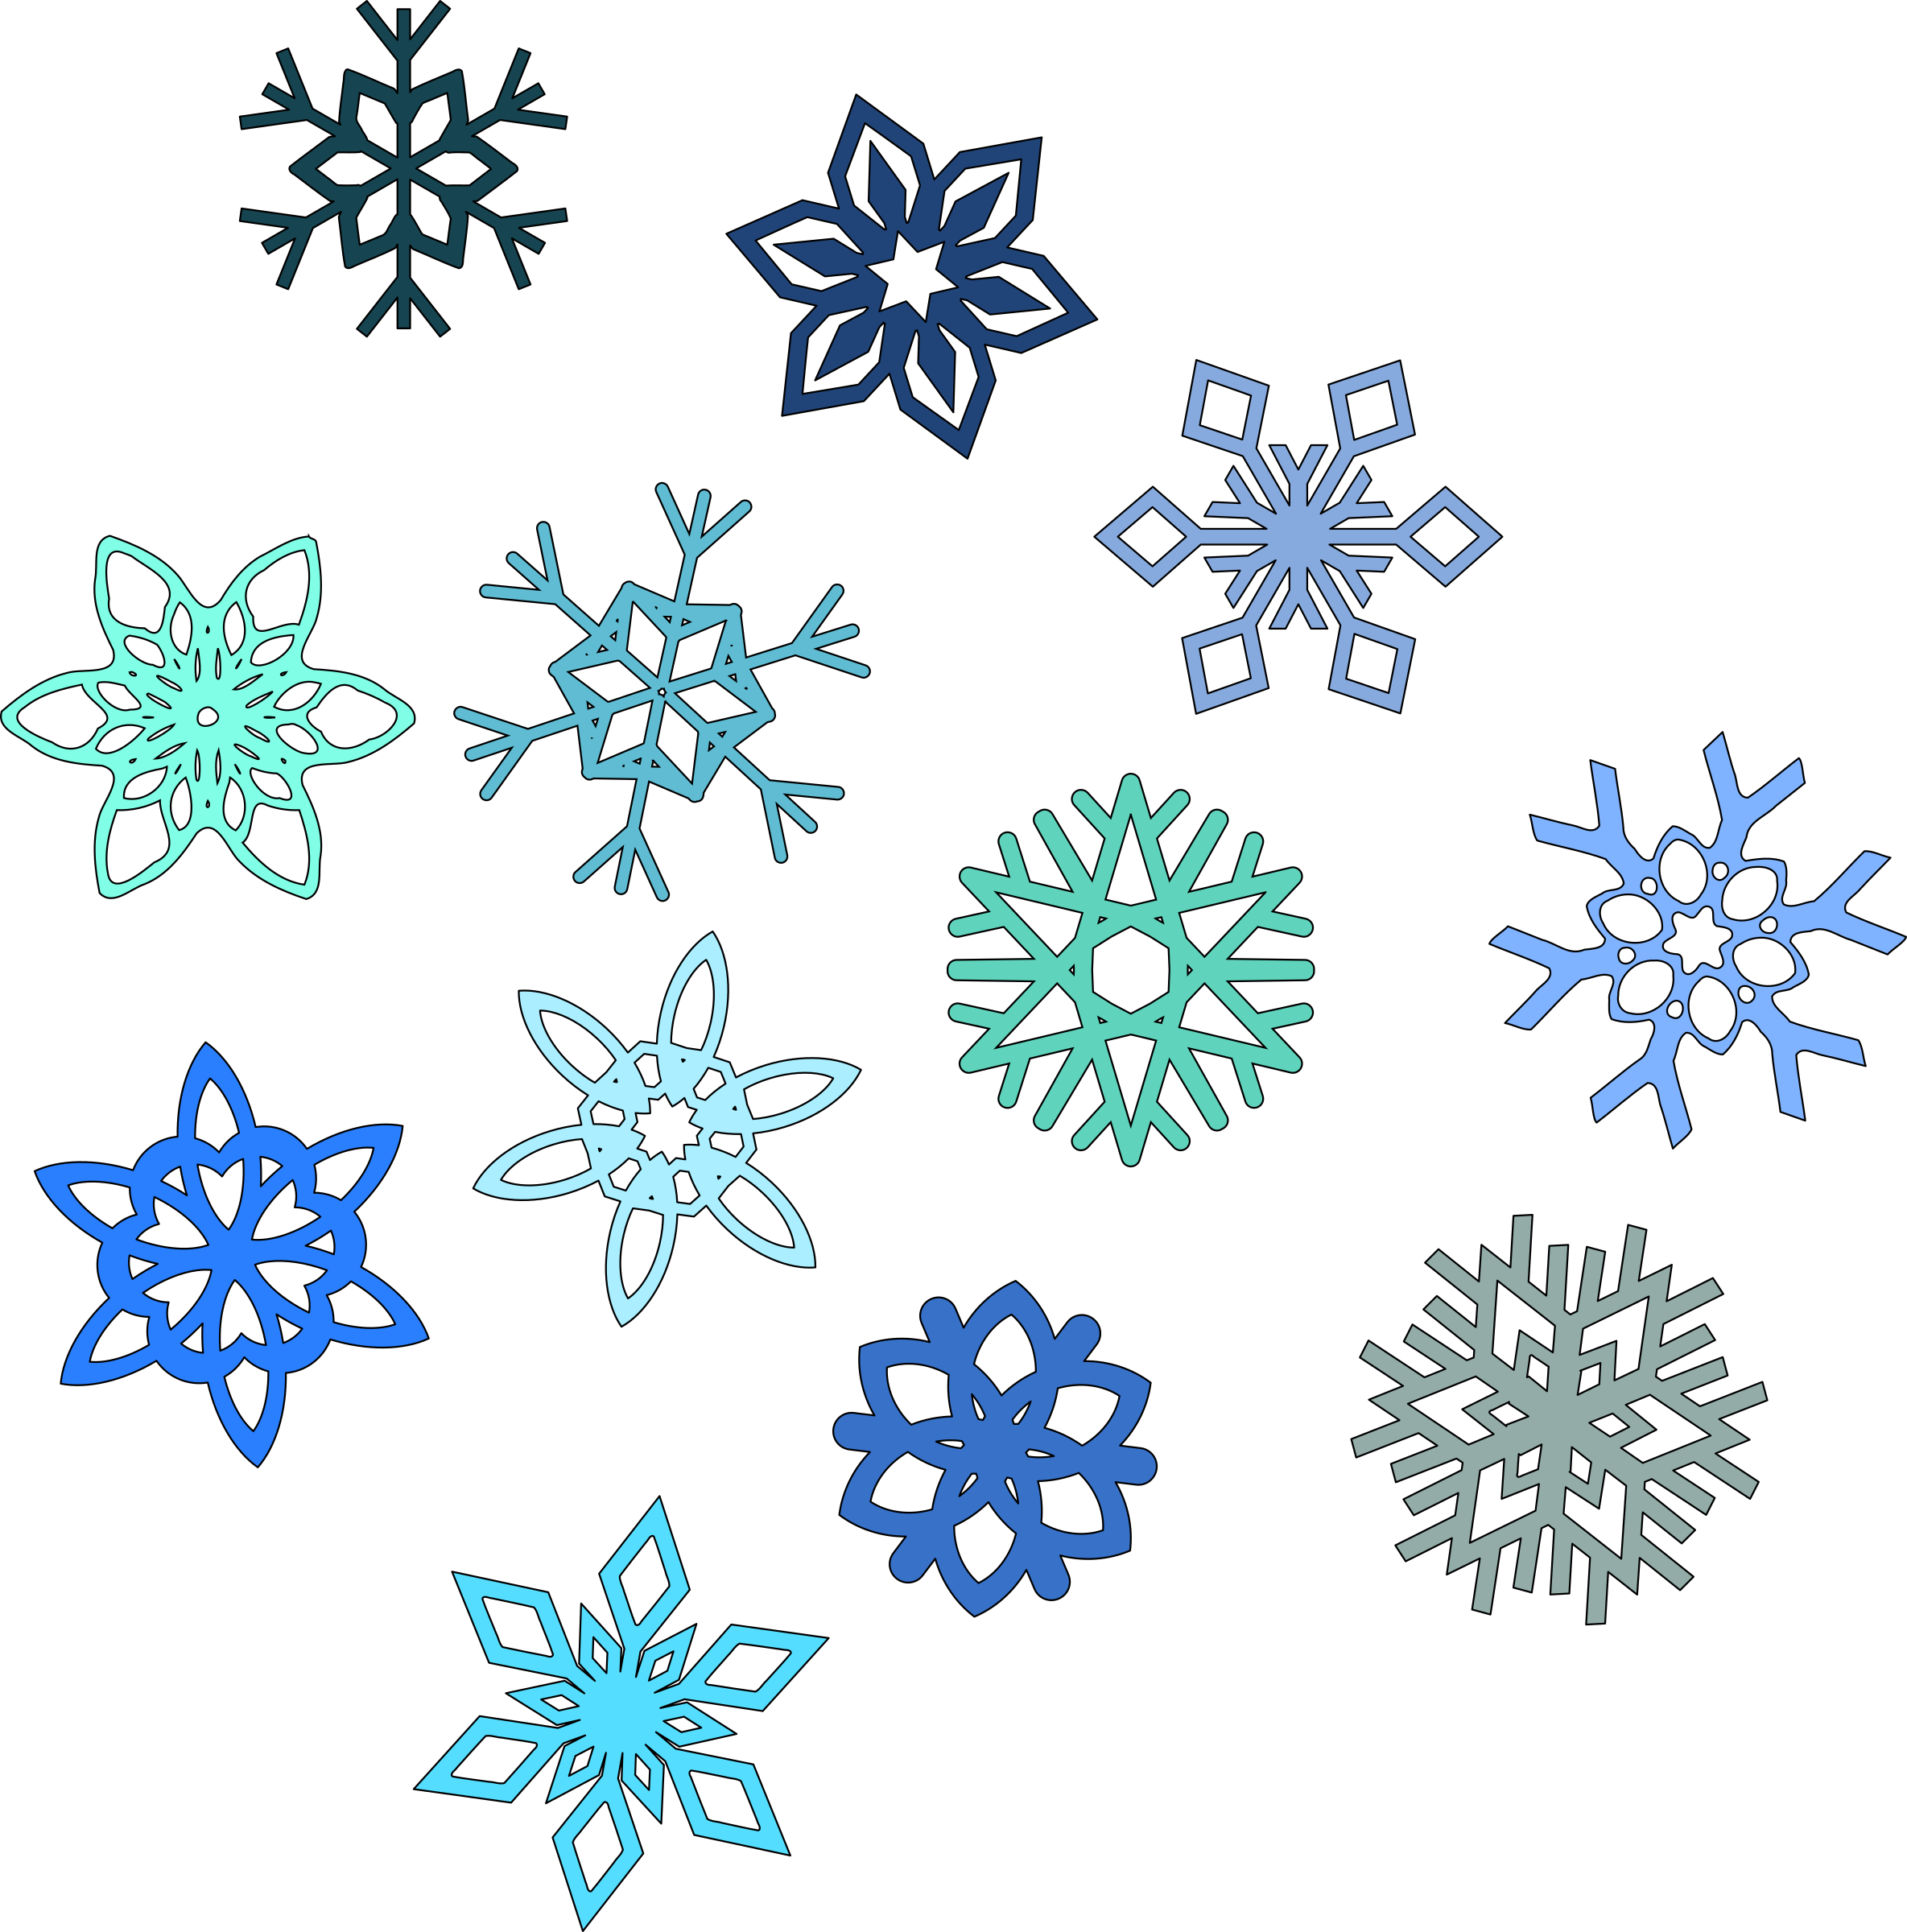 Simple snowflake clipart frames black and white picture freeuse Keeping a Snow Journal | Pinterest | Scrapbooking picture freeuse